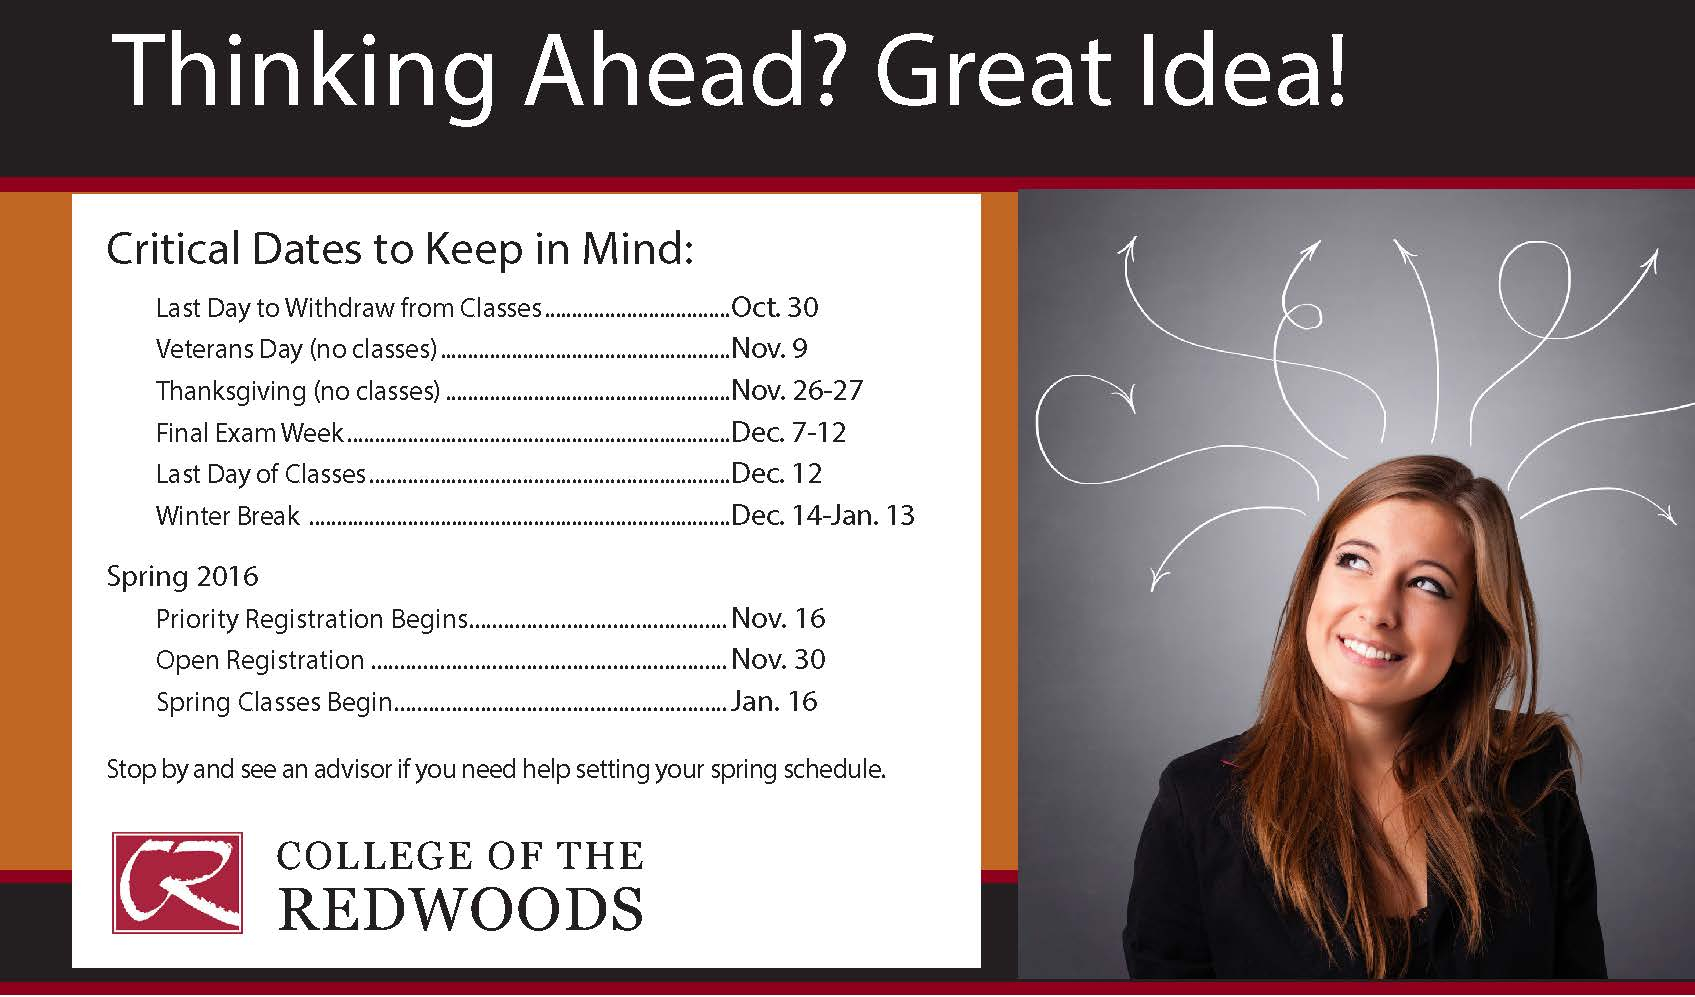 Spring Registration Coming Soon! intended for When Does School Start At College Of The Redwoods After Winter Break